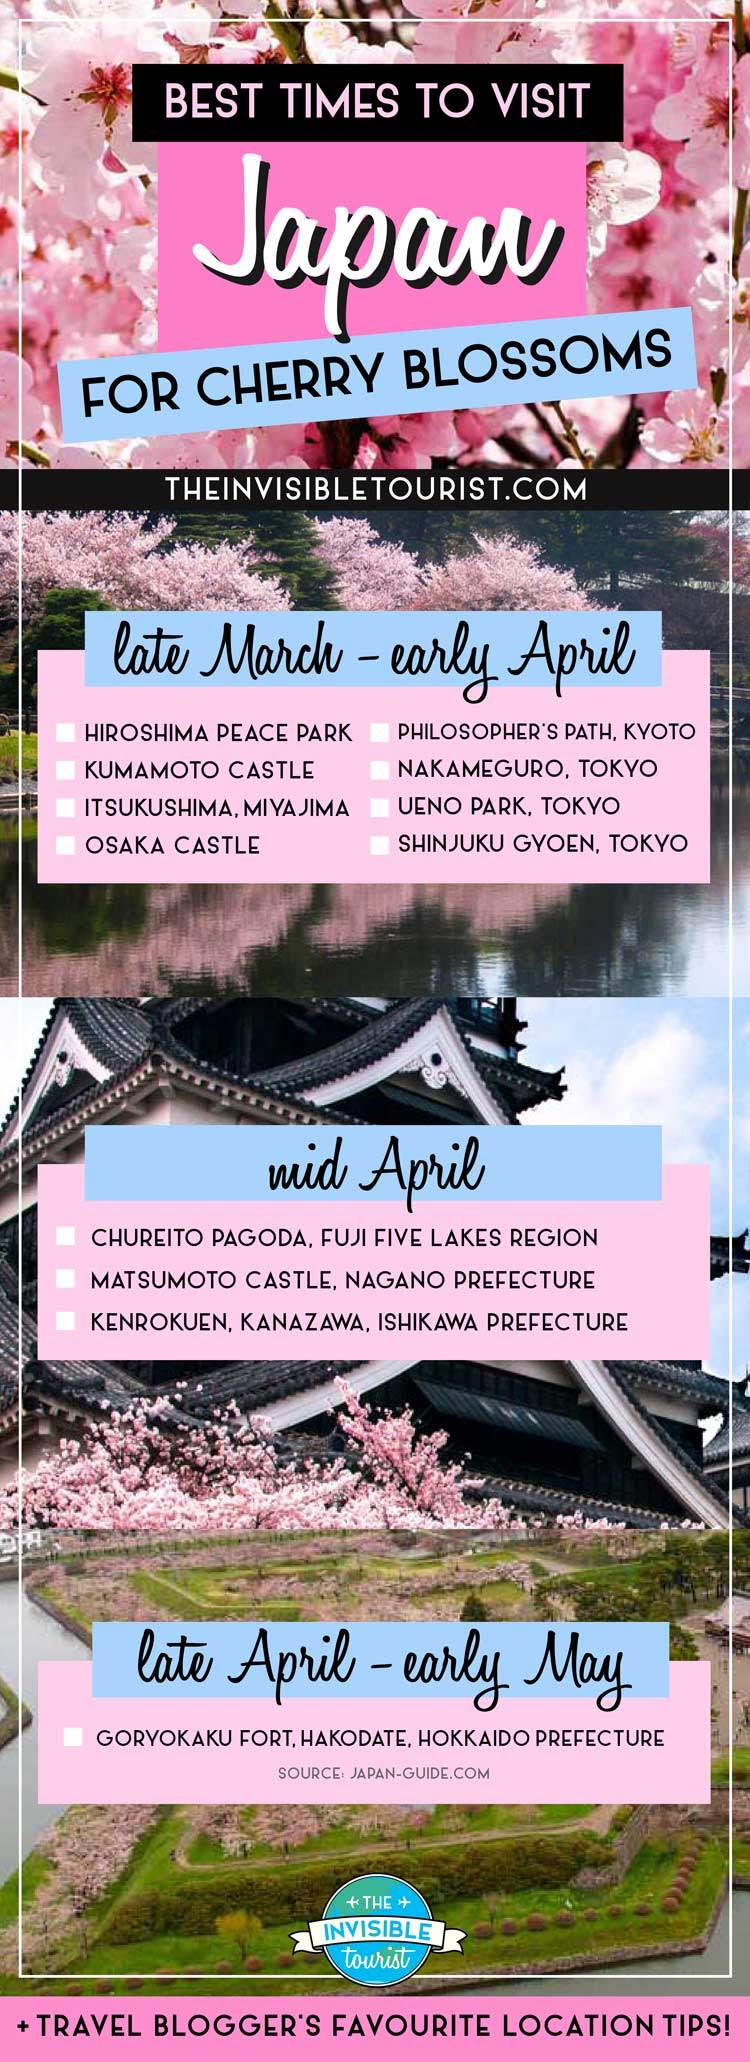 REVEALED: The Best Time to Visit Japan for Cherry Blossoms | The Invisible Tourist